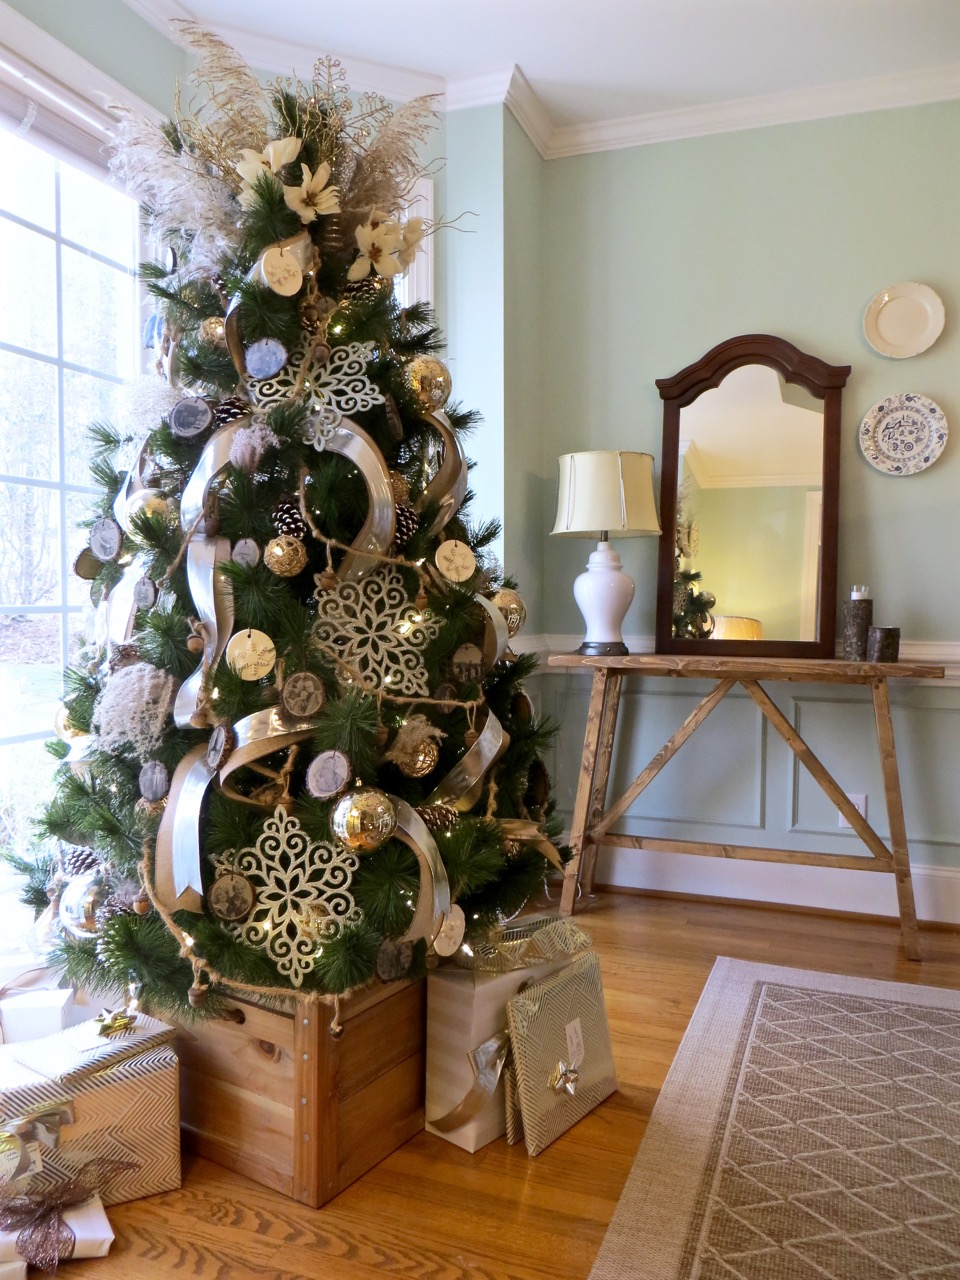 DIY Tutorial - Steps on Decorating a Tree + Tips | The Project Lady